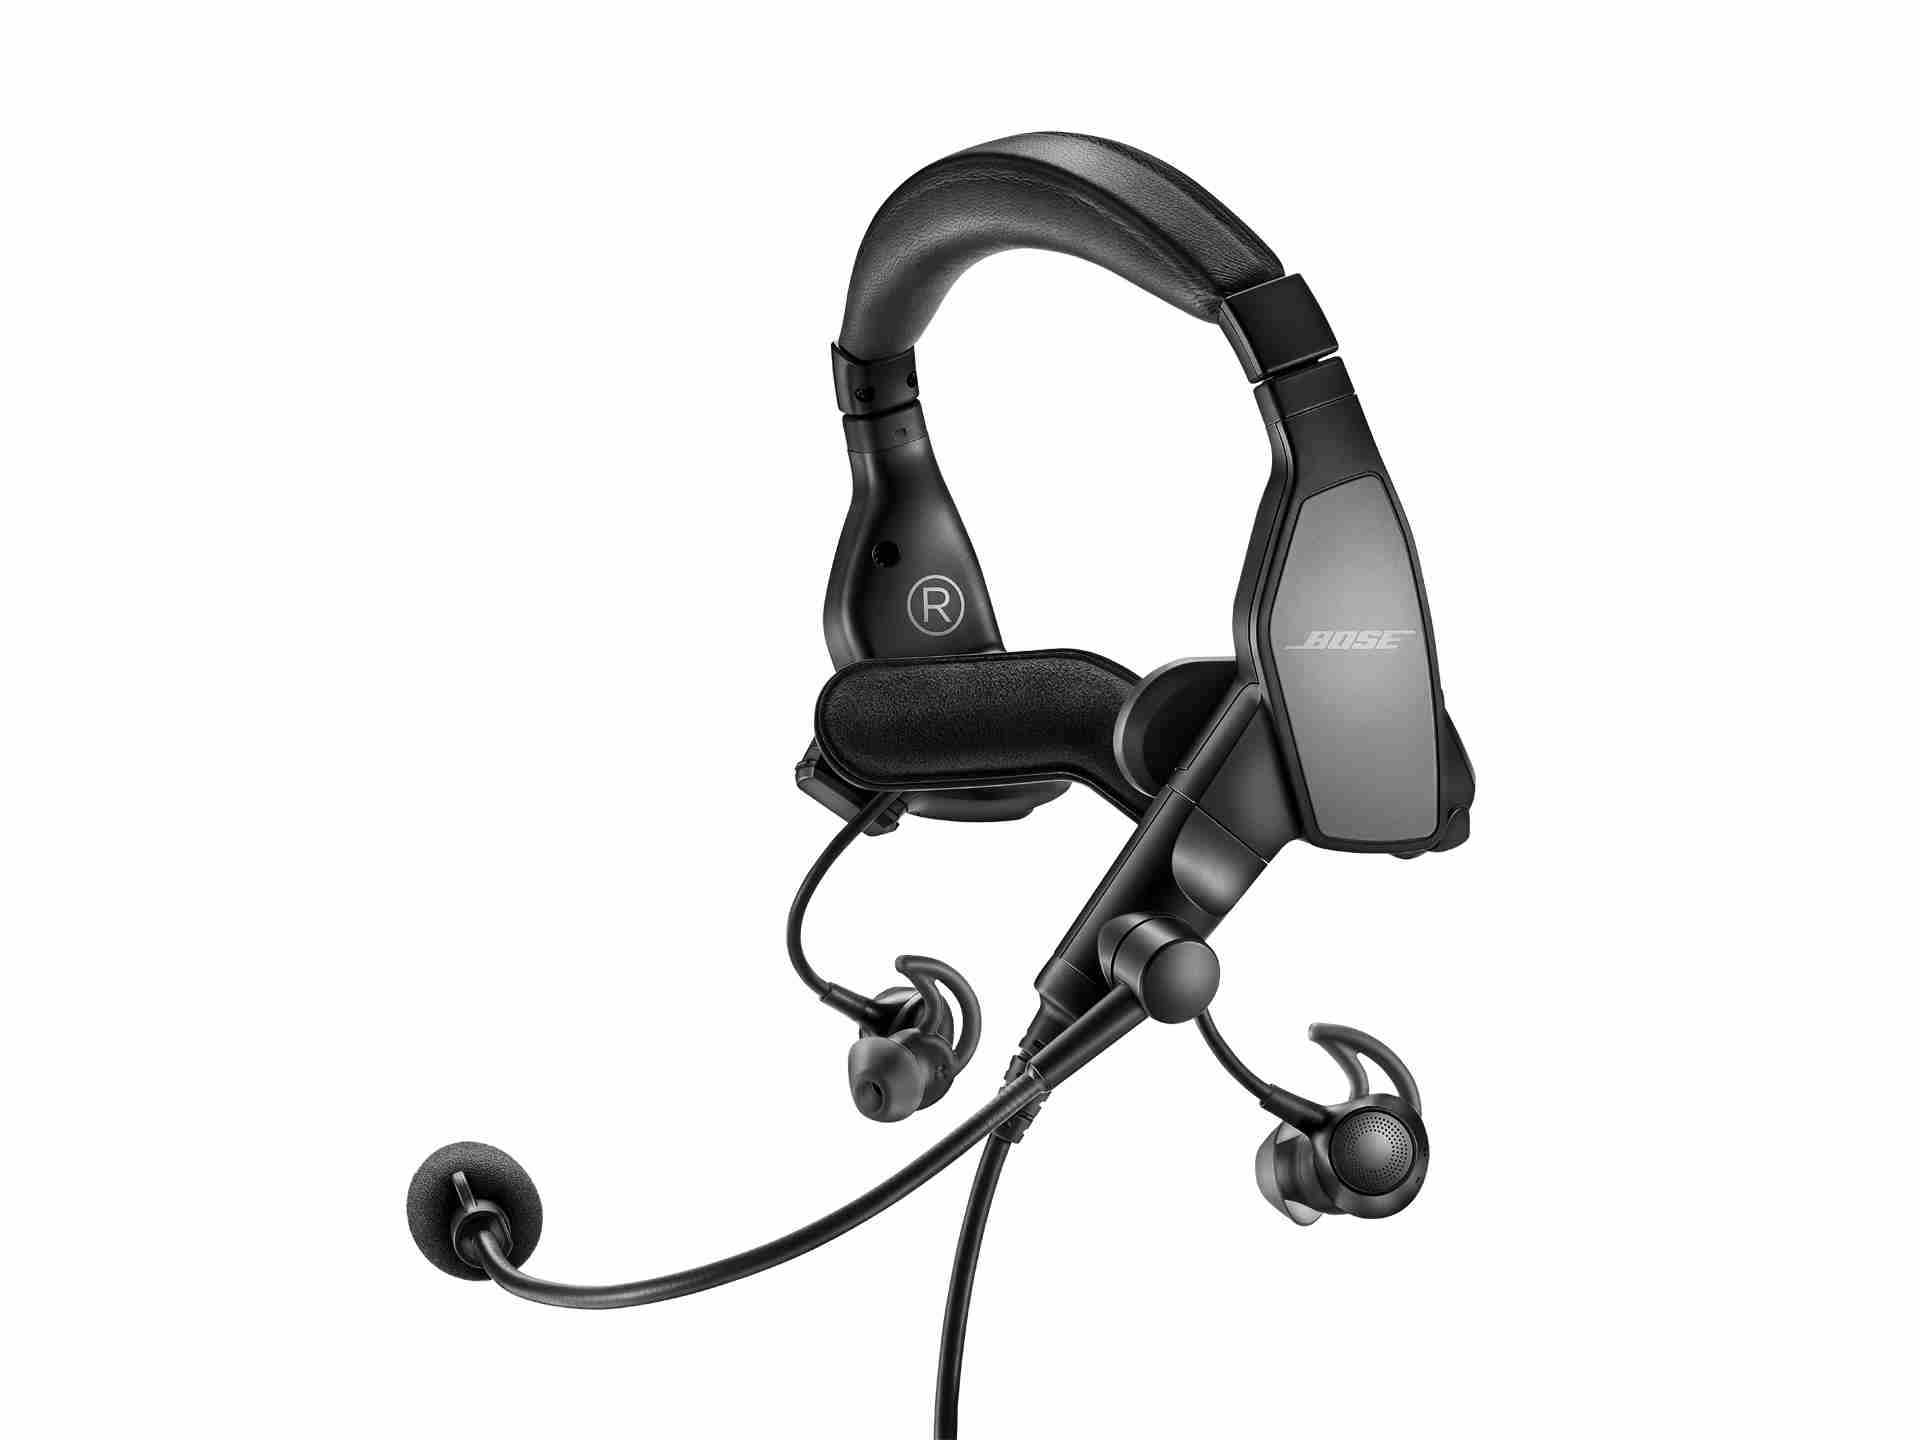 Casque d'Aviation ProFlight Série 2 - Sans Bluetooth